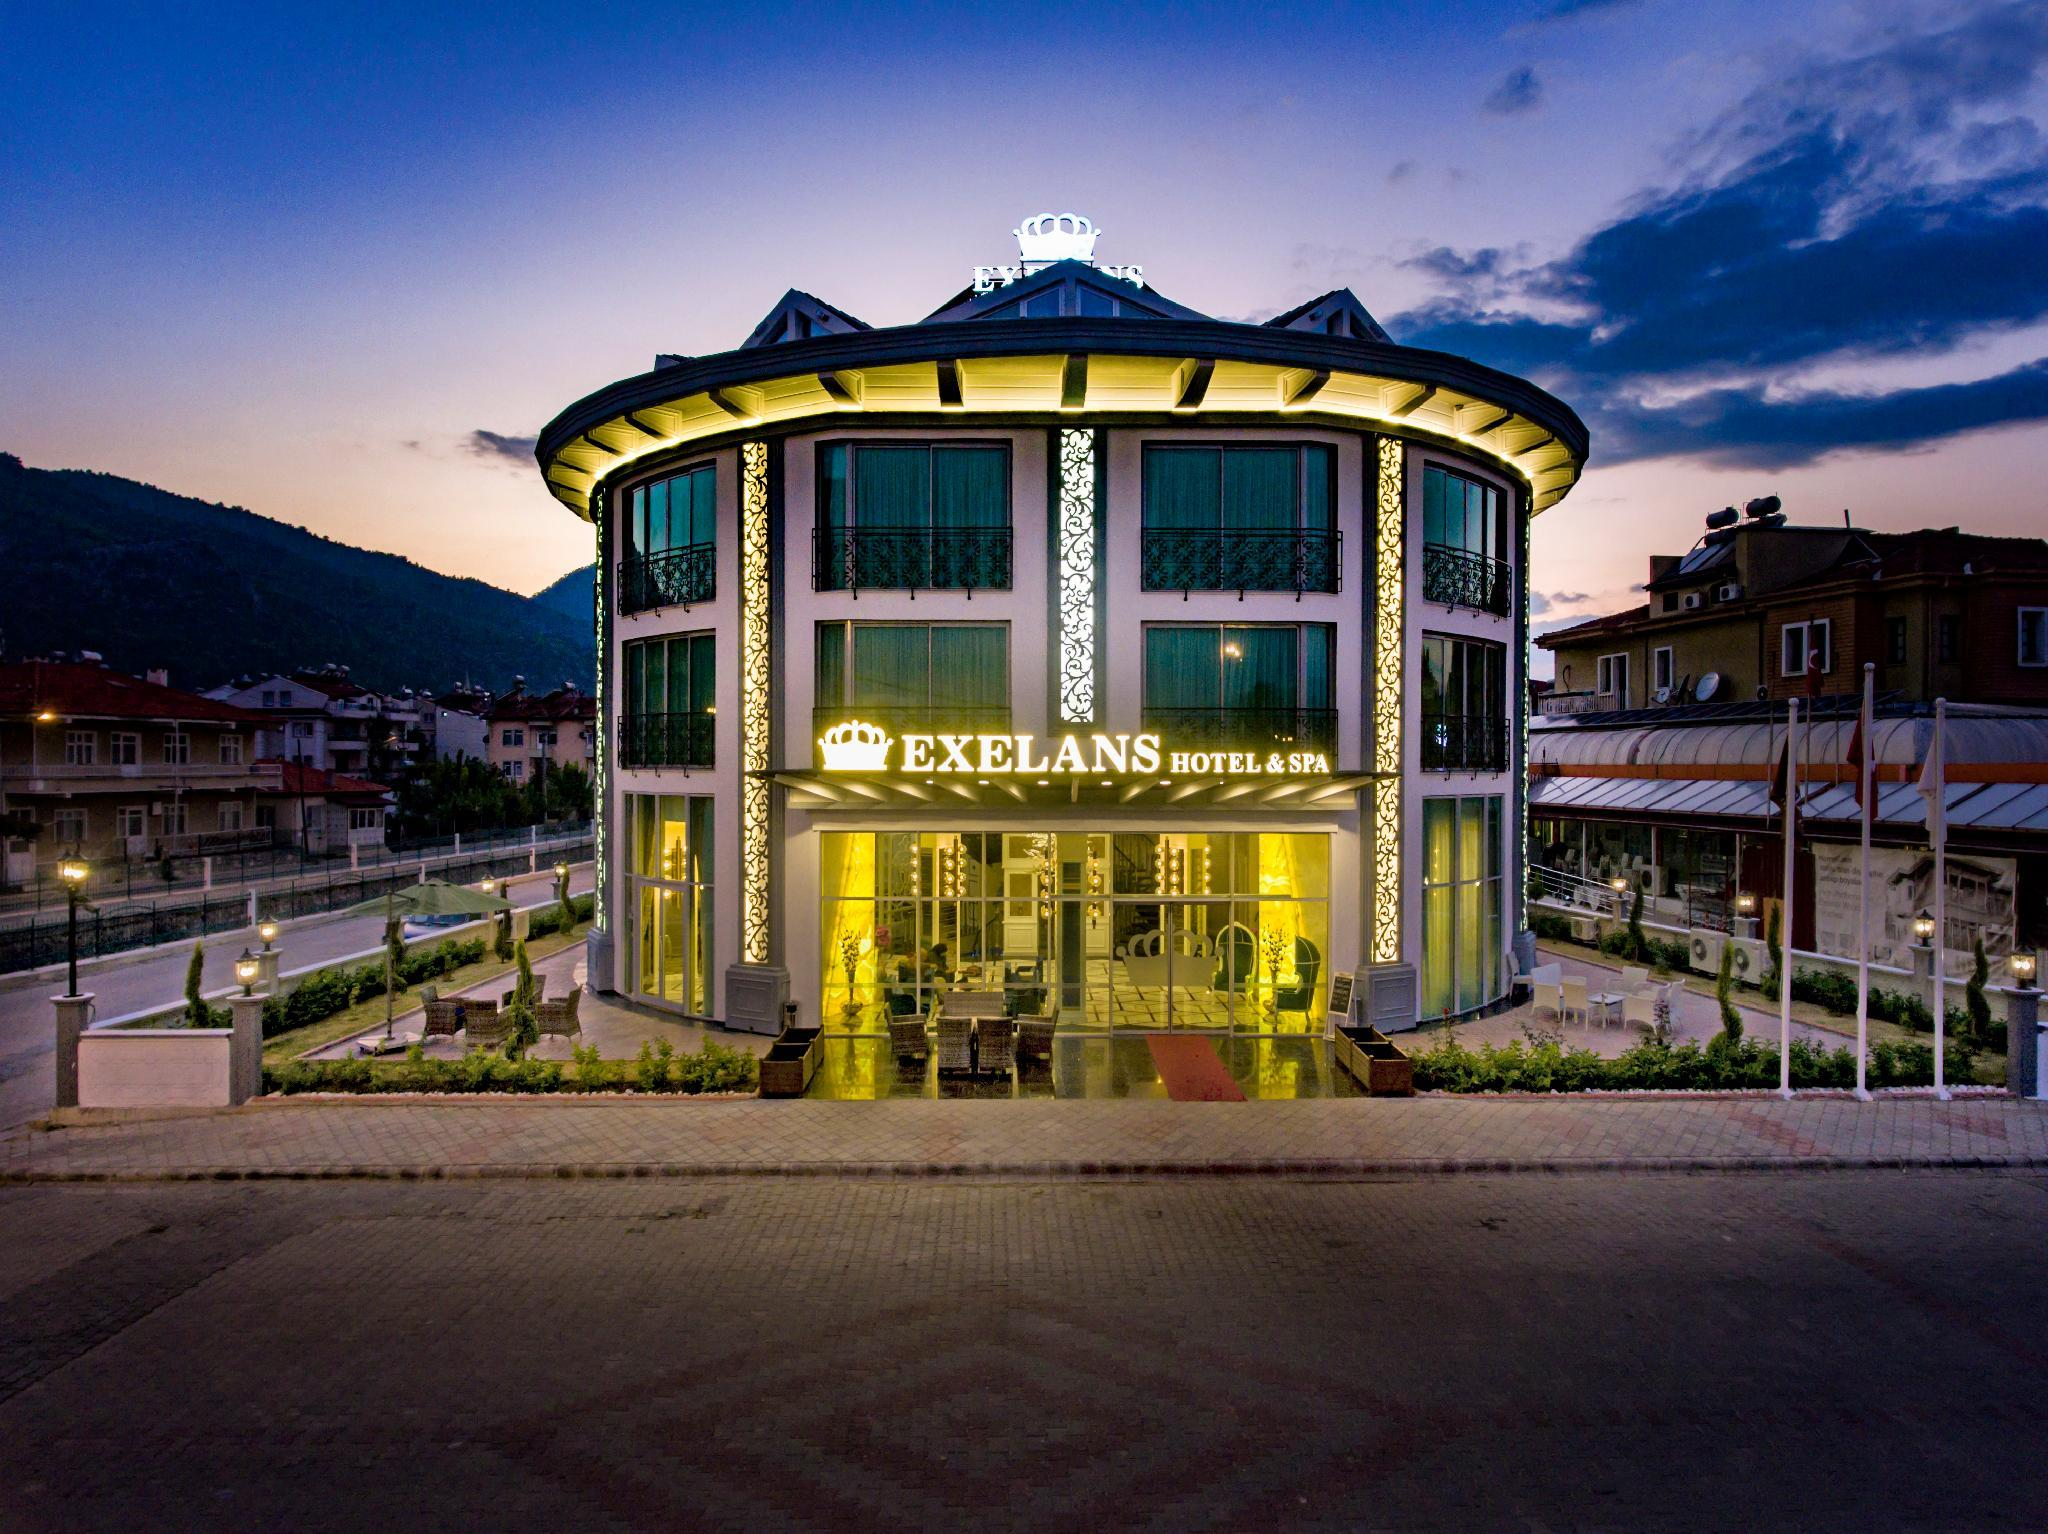 Exelans Hotel And Spa